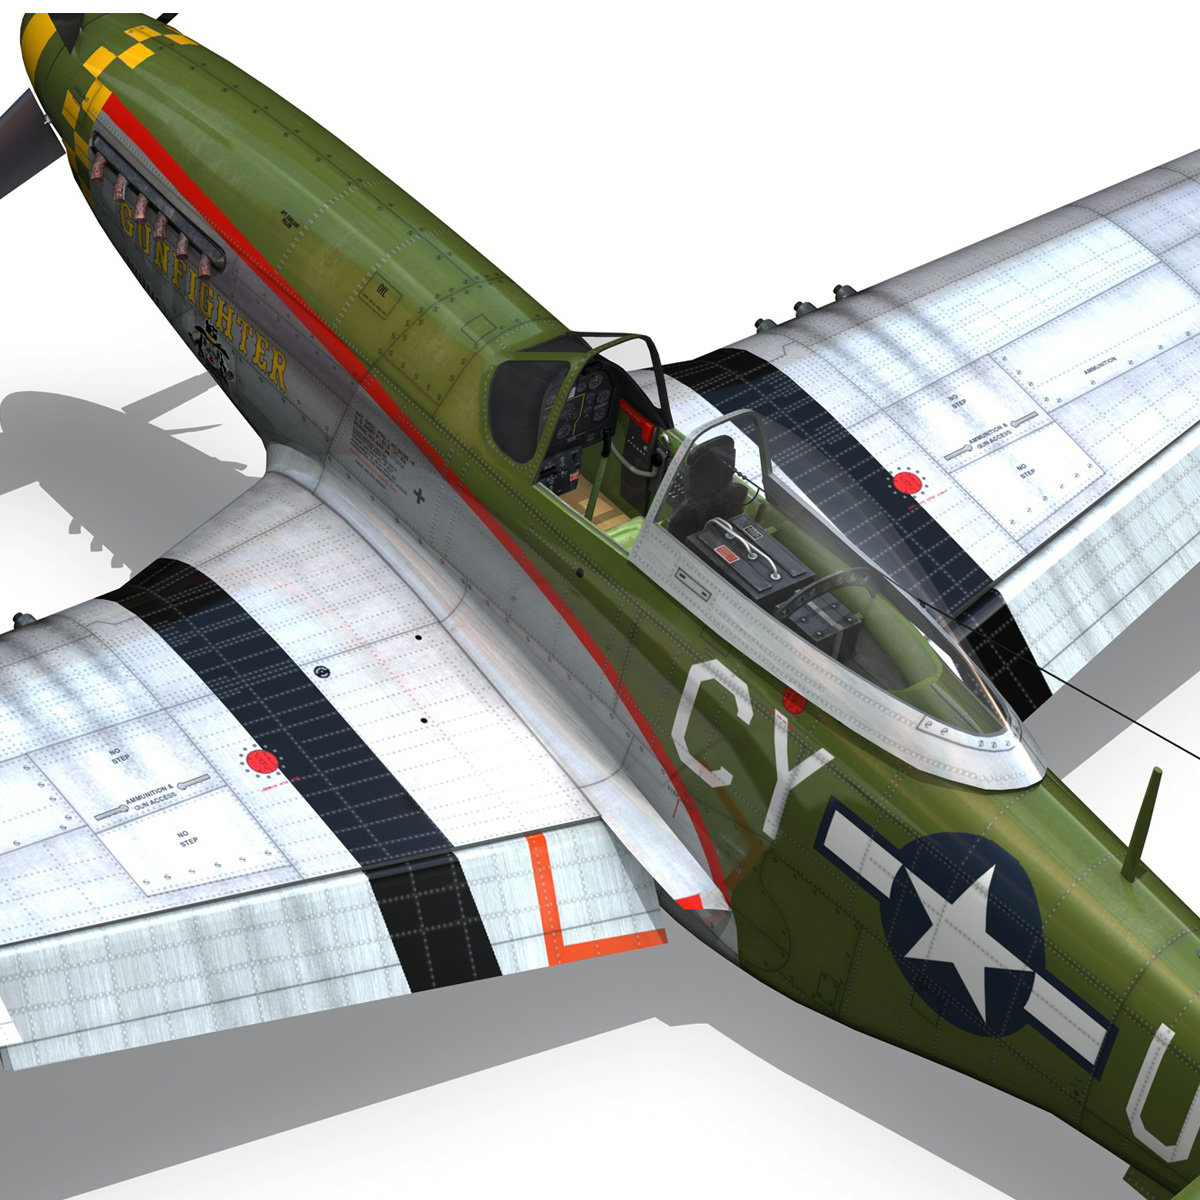 north american p-51d mustang – gunfighter 3d model fbx c4d lwo obj 269584